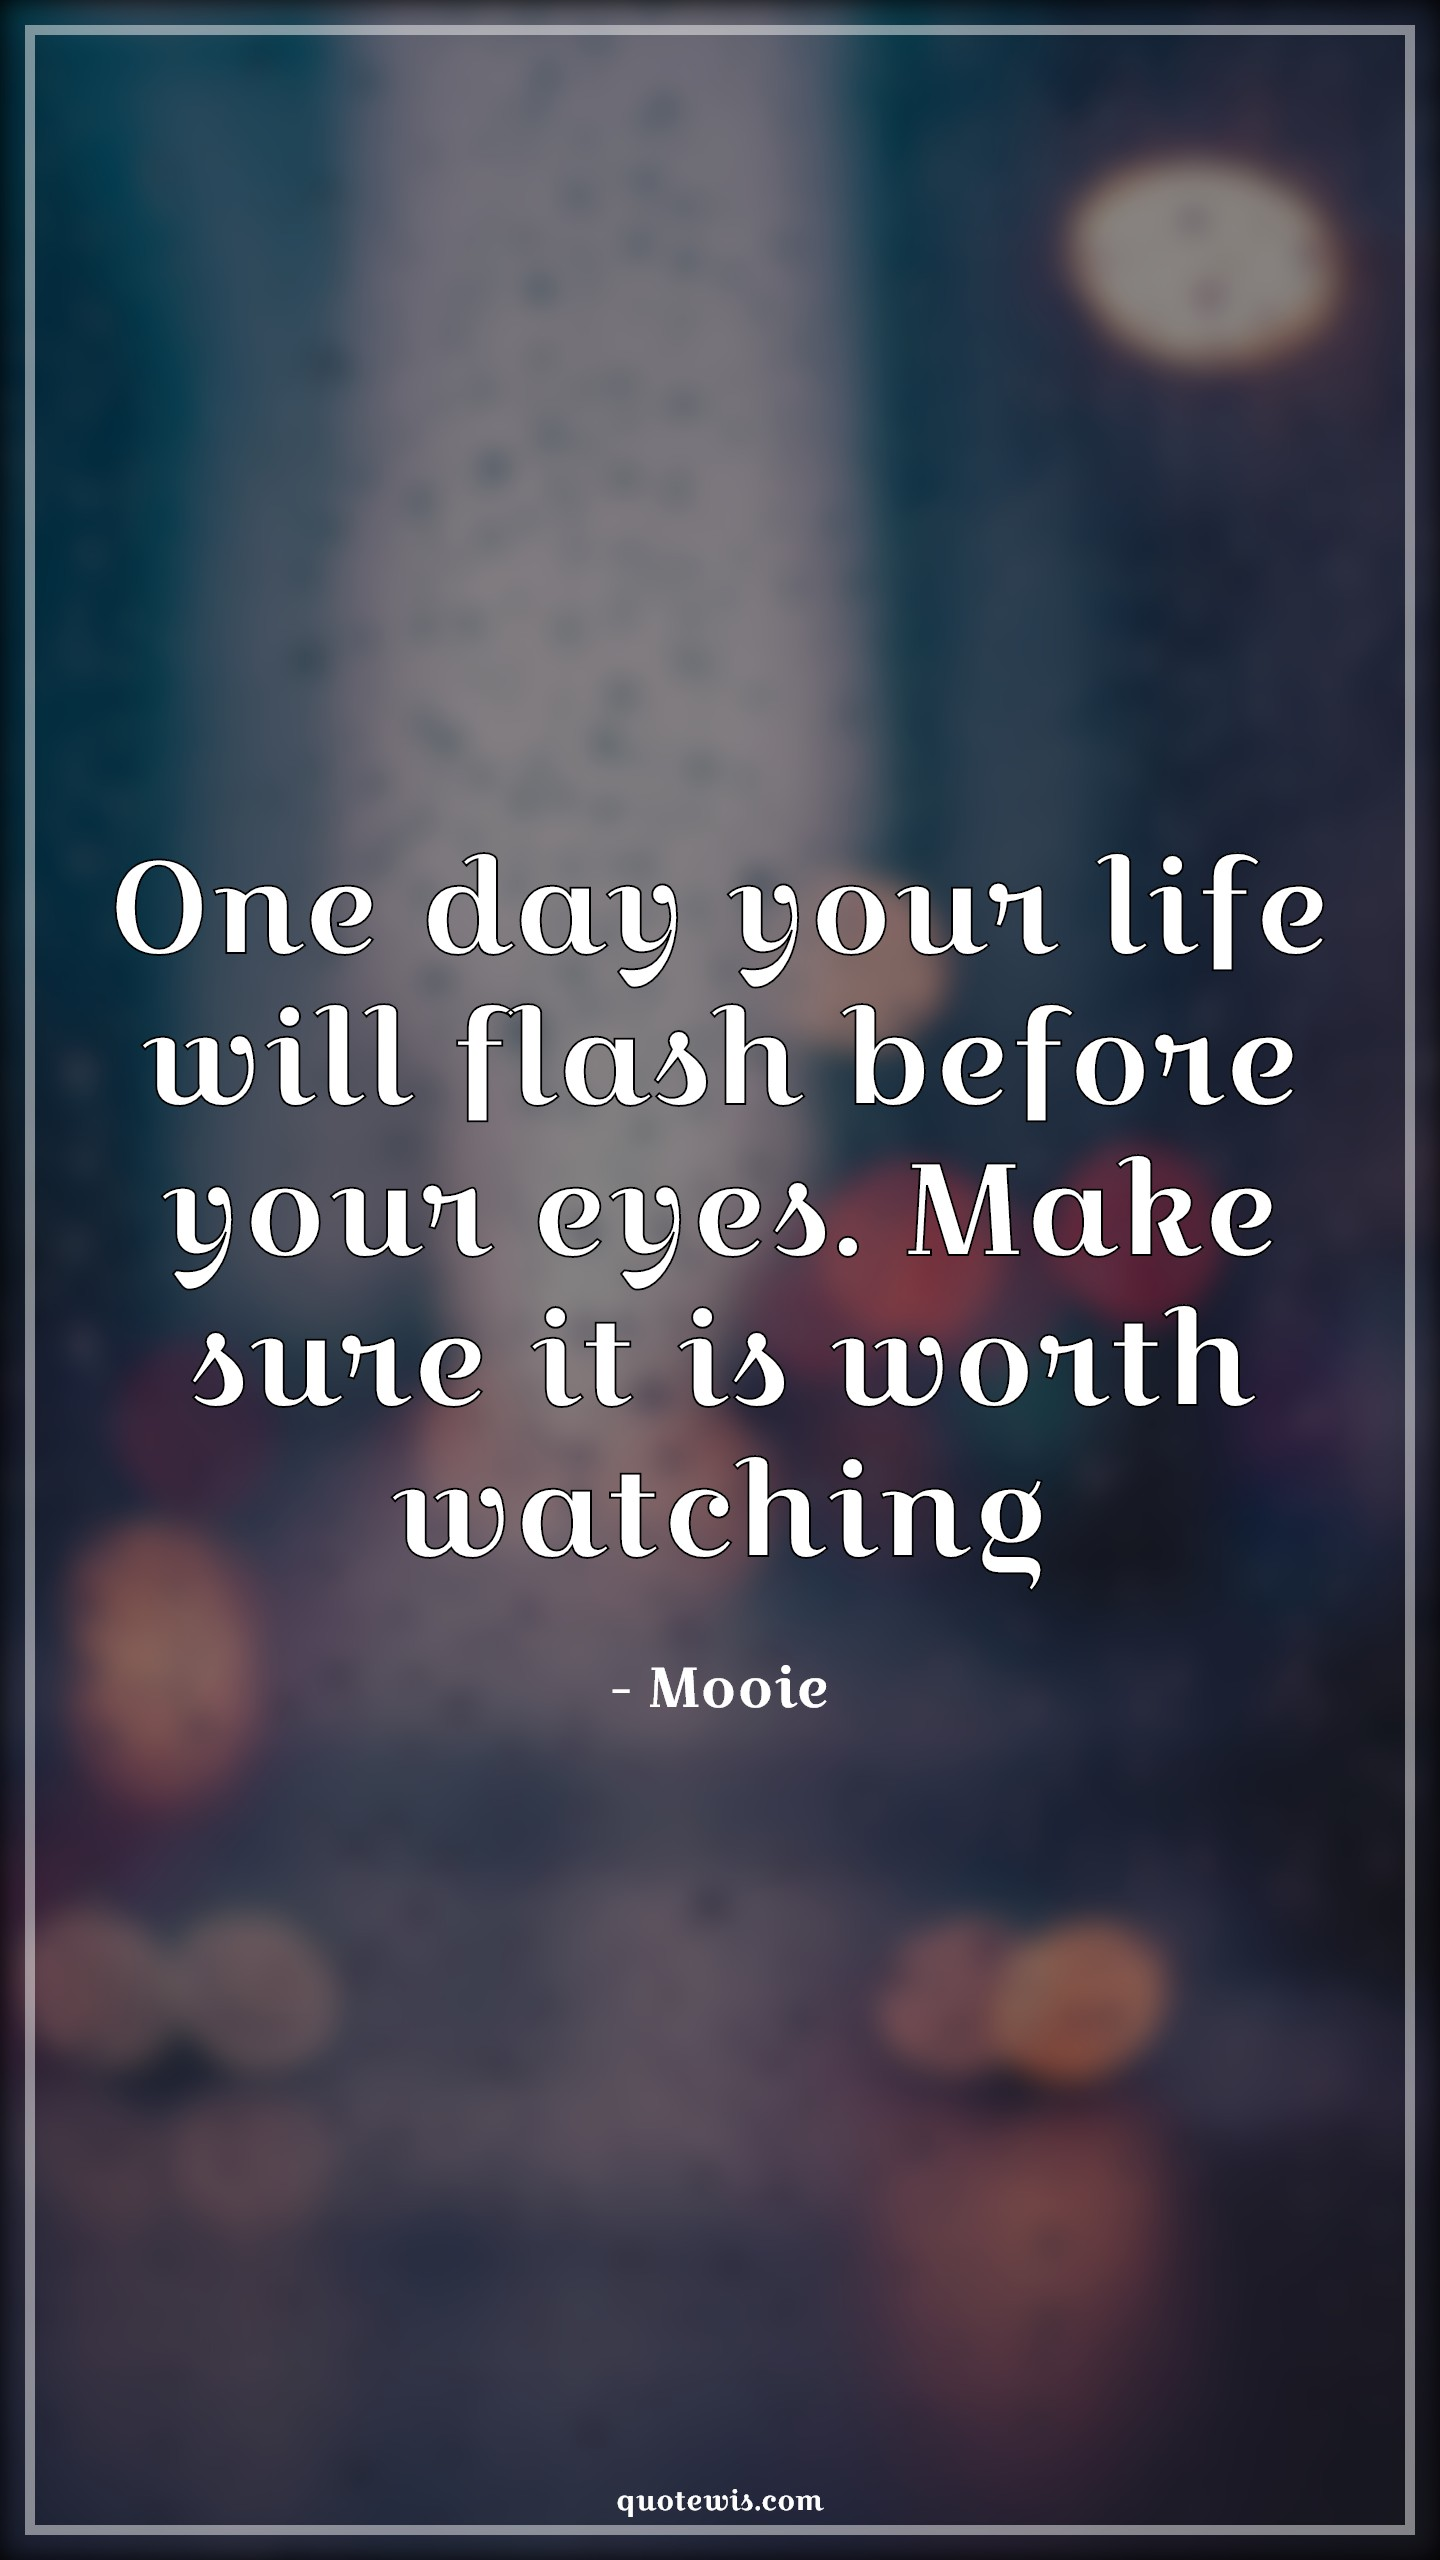 One day your life will flash before your eyes. Make sure it is worth watching